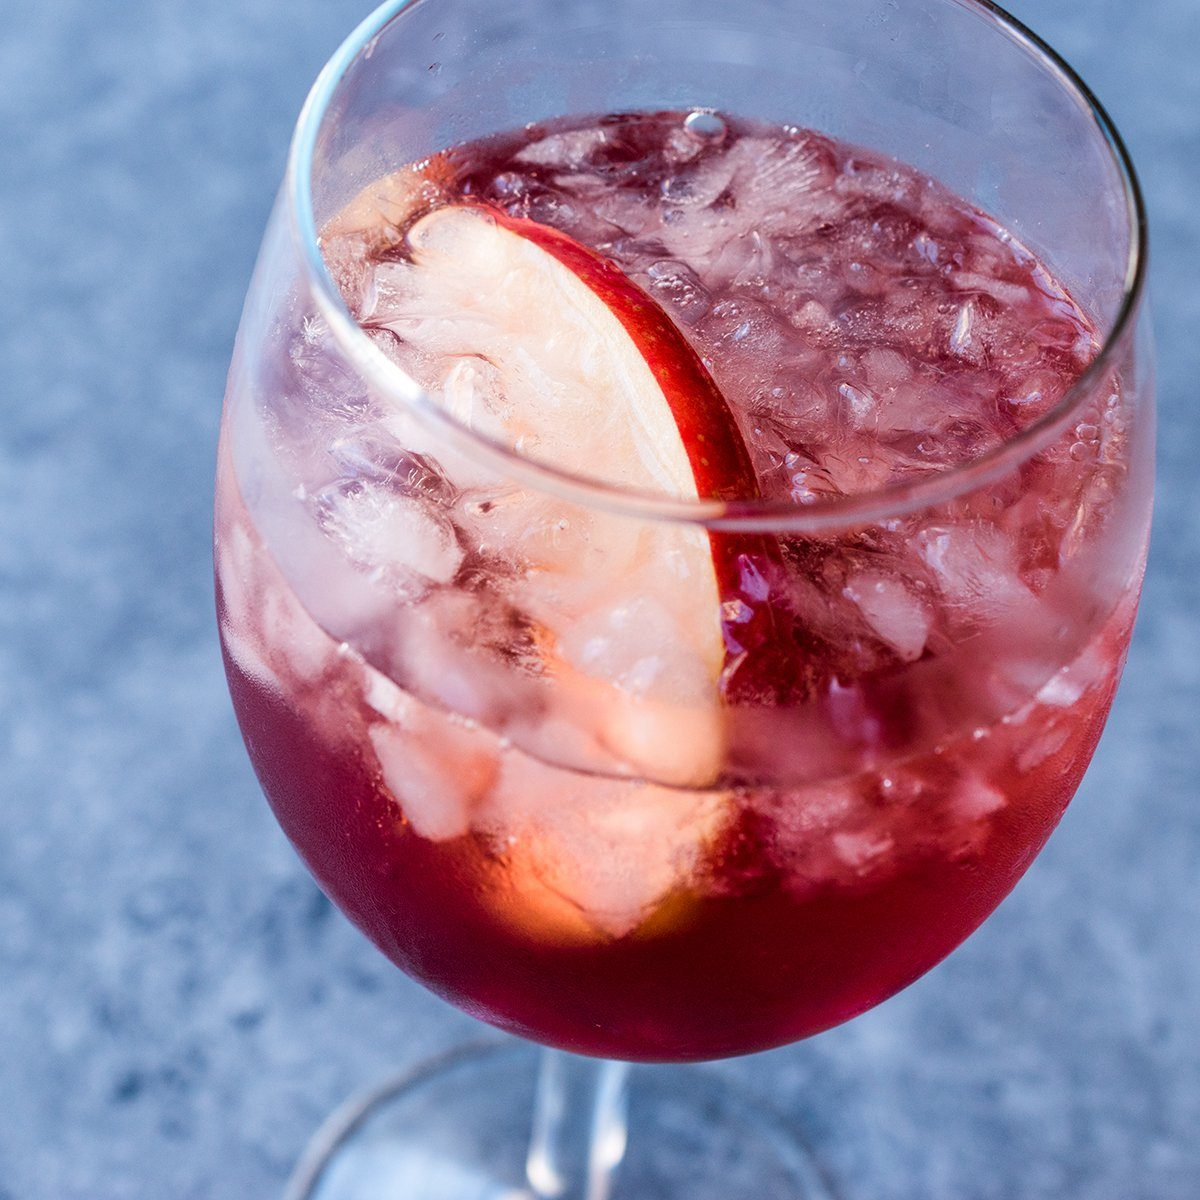 Rose Pink Blush Wine Cocktail with Pomegranate Seeds, Apple Slice and Crushed Ice.